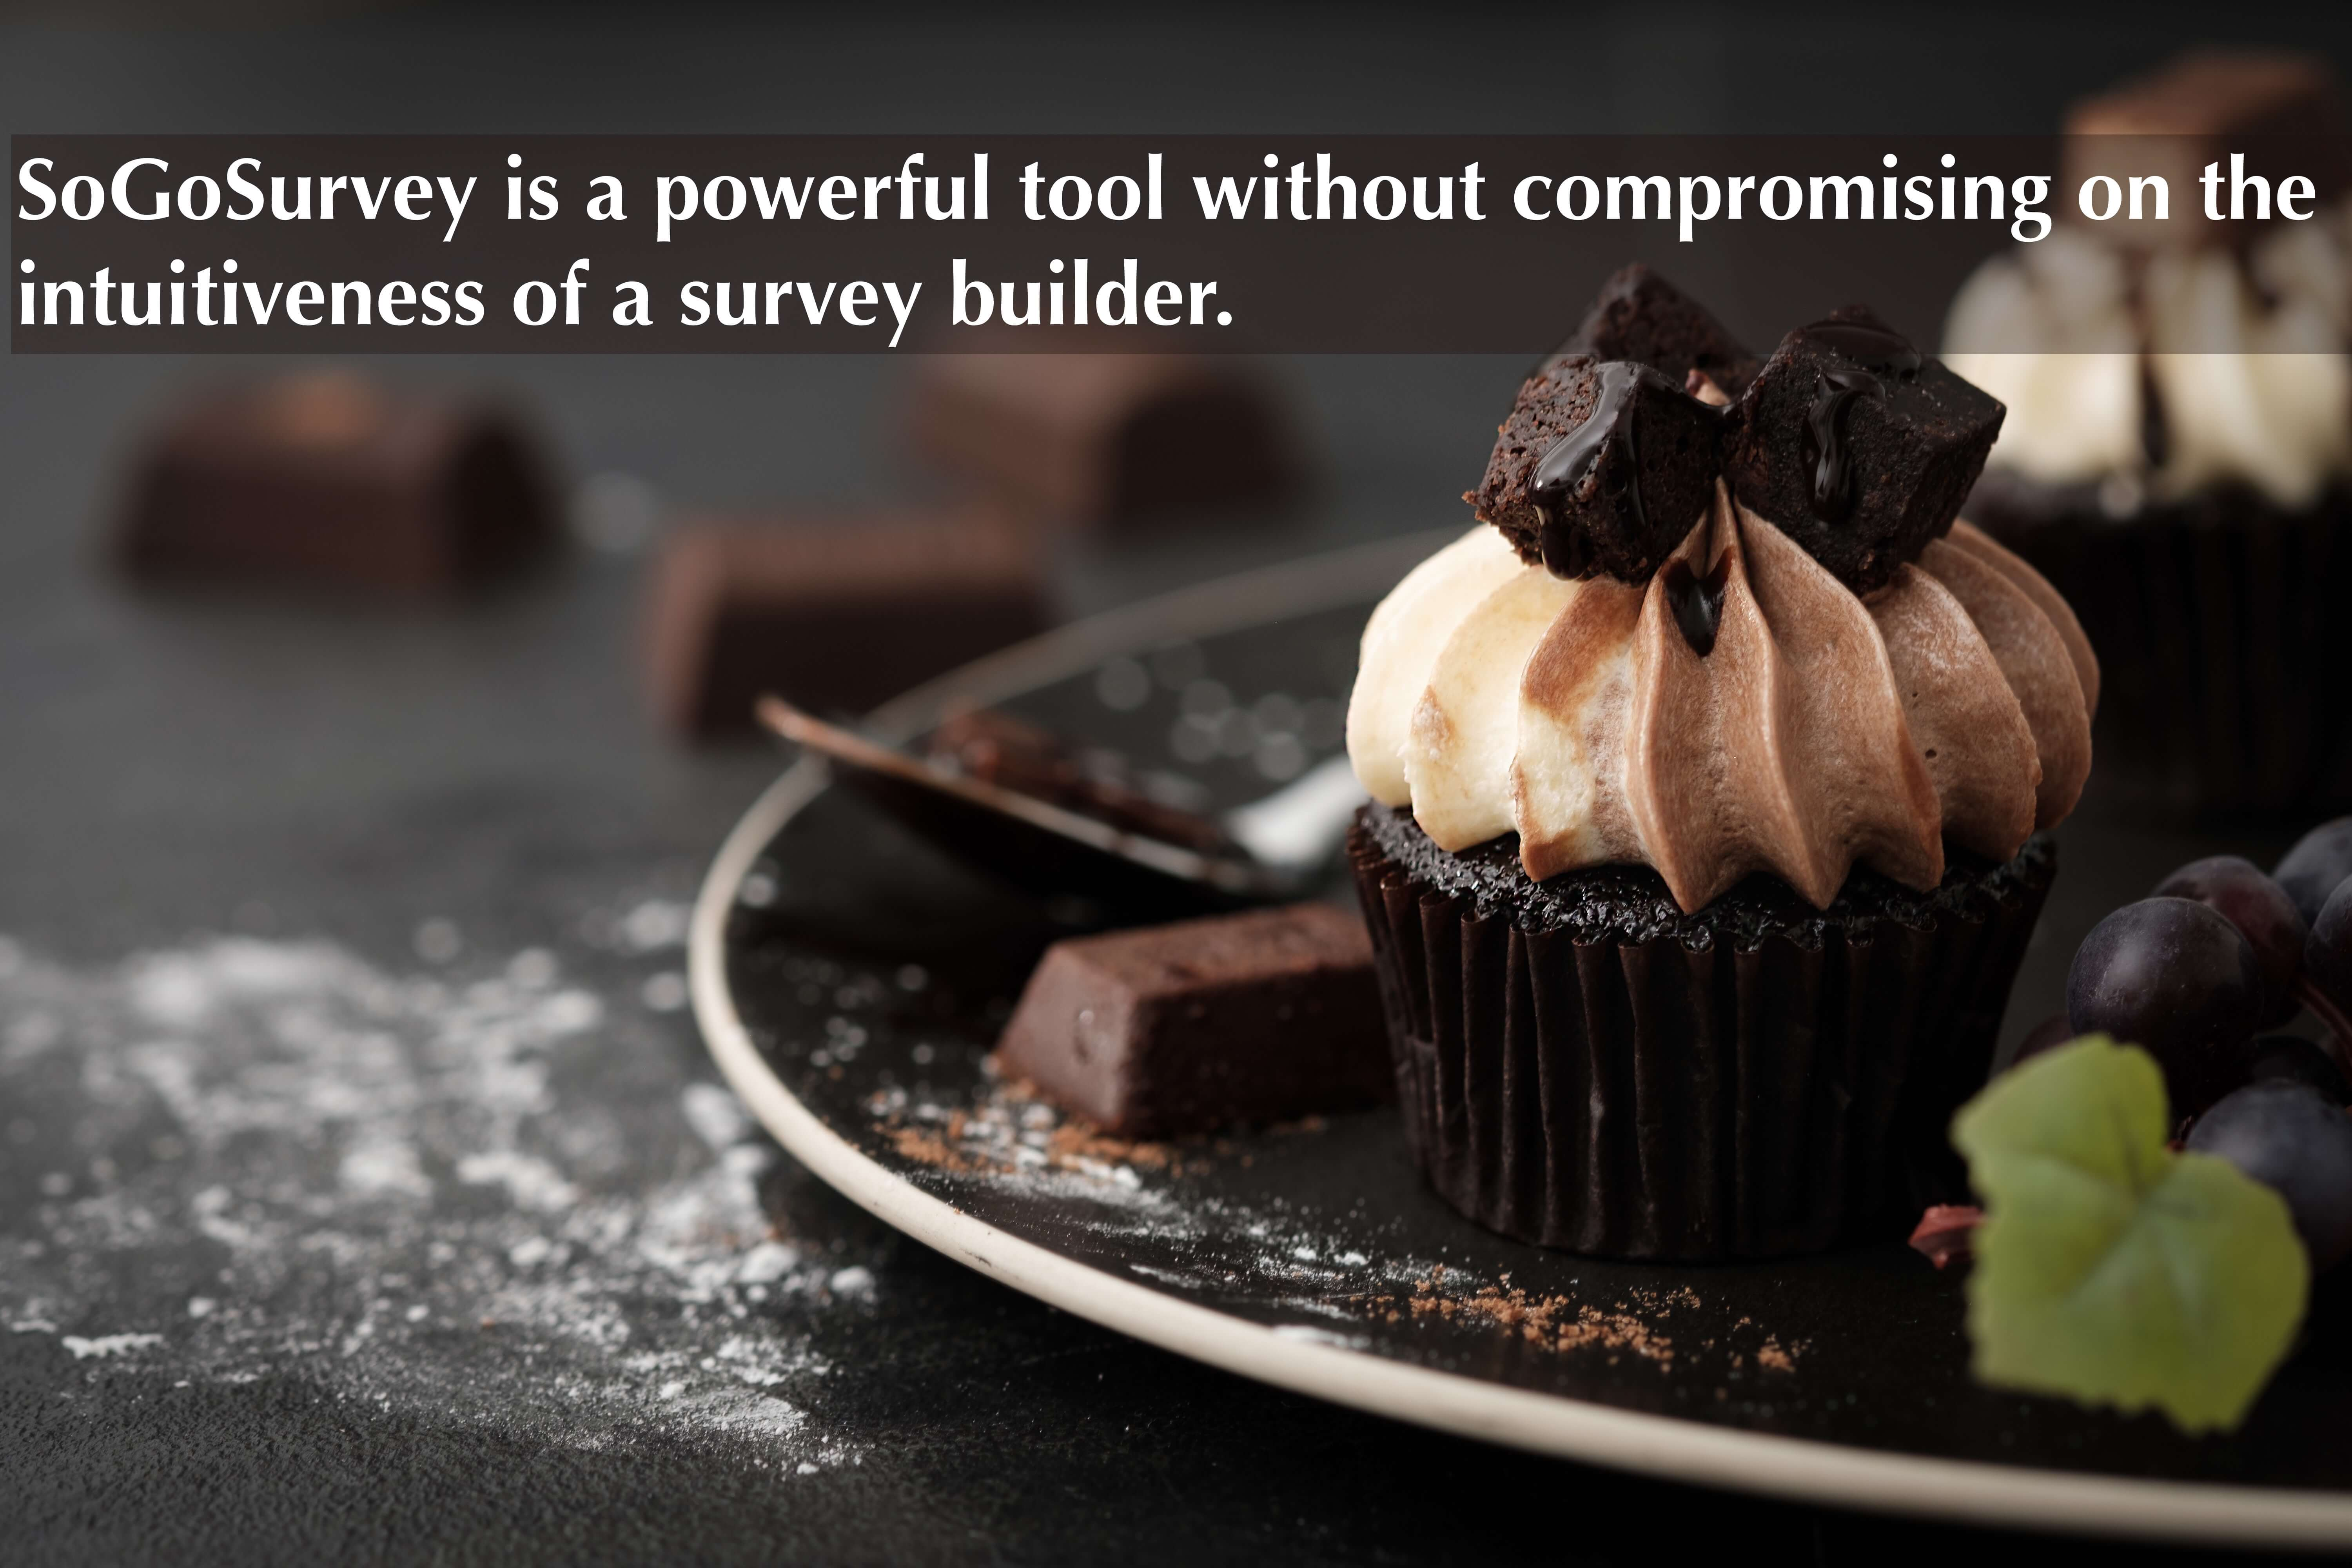 SoGoSurvey is a powerful tool without compromising on the intuitiveness of a survey builder.